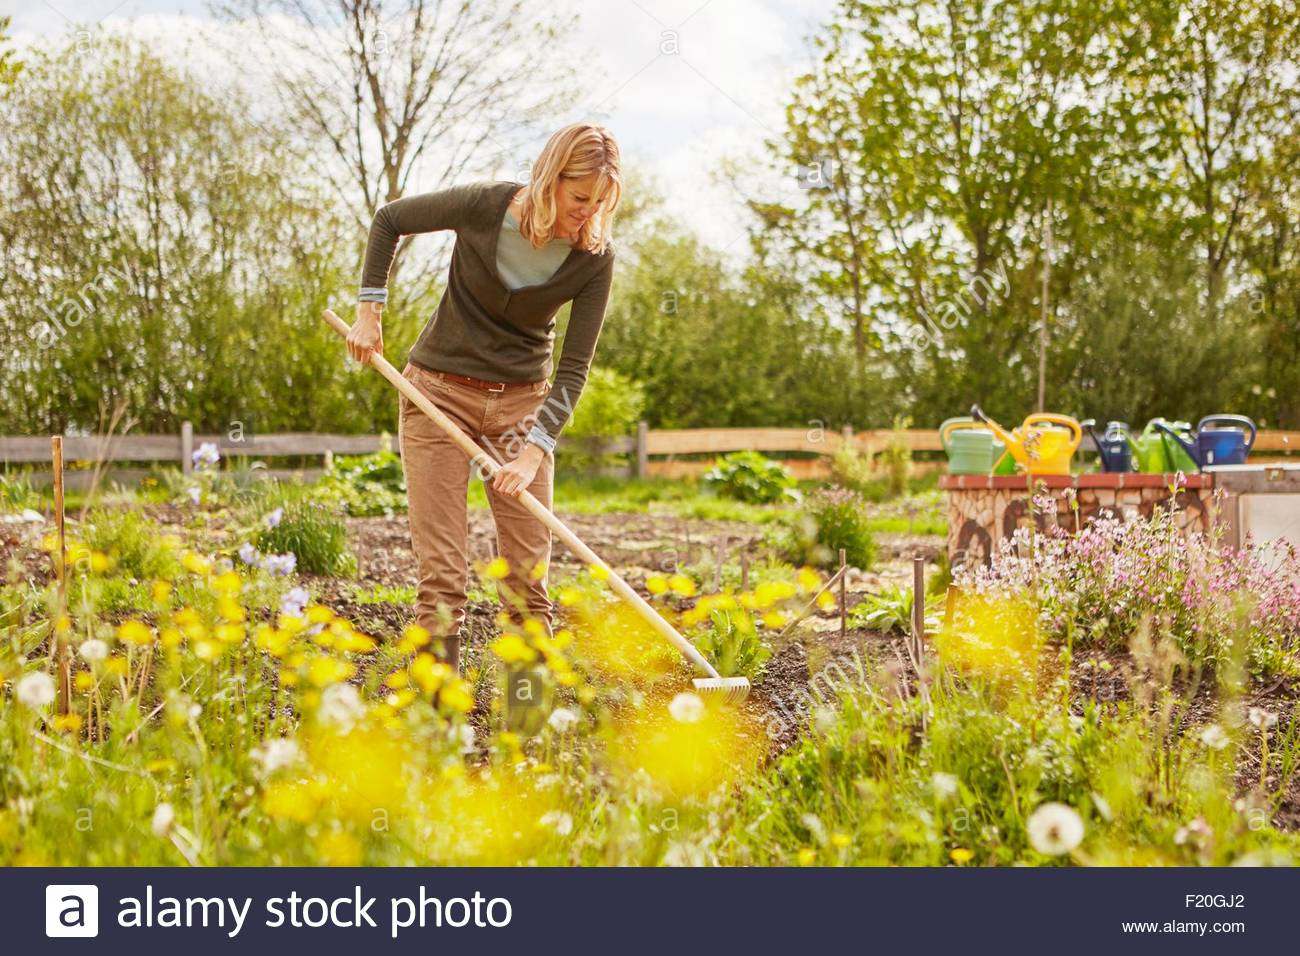 Mature woman, outdoors, gardening, raking soil - Stock Image